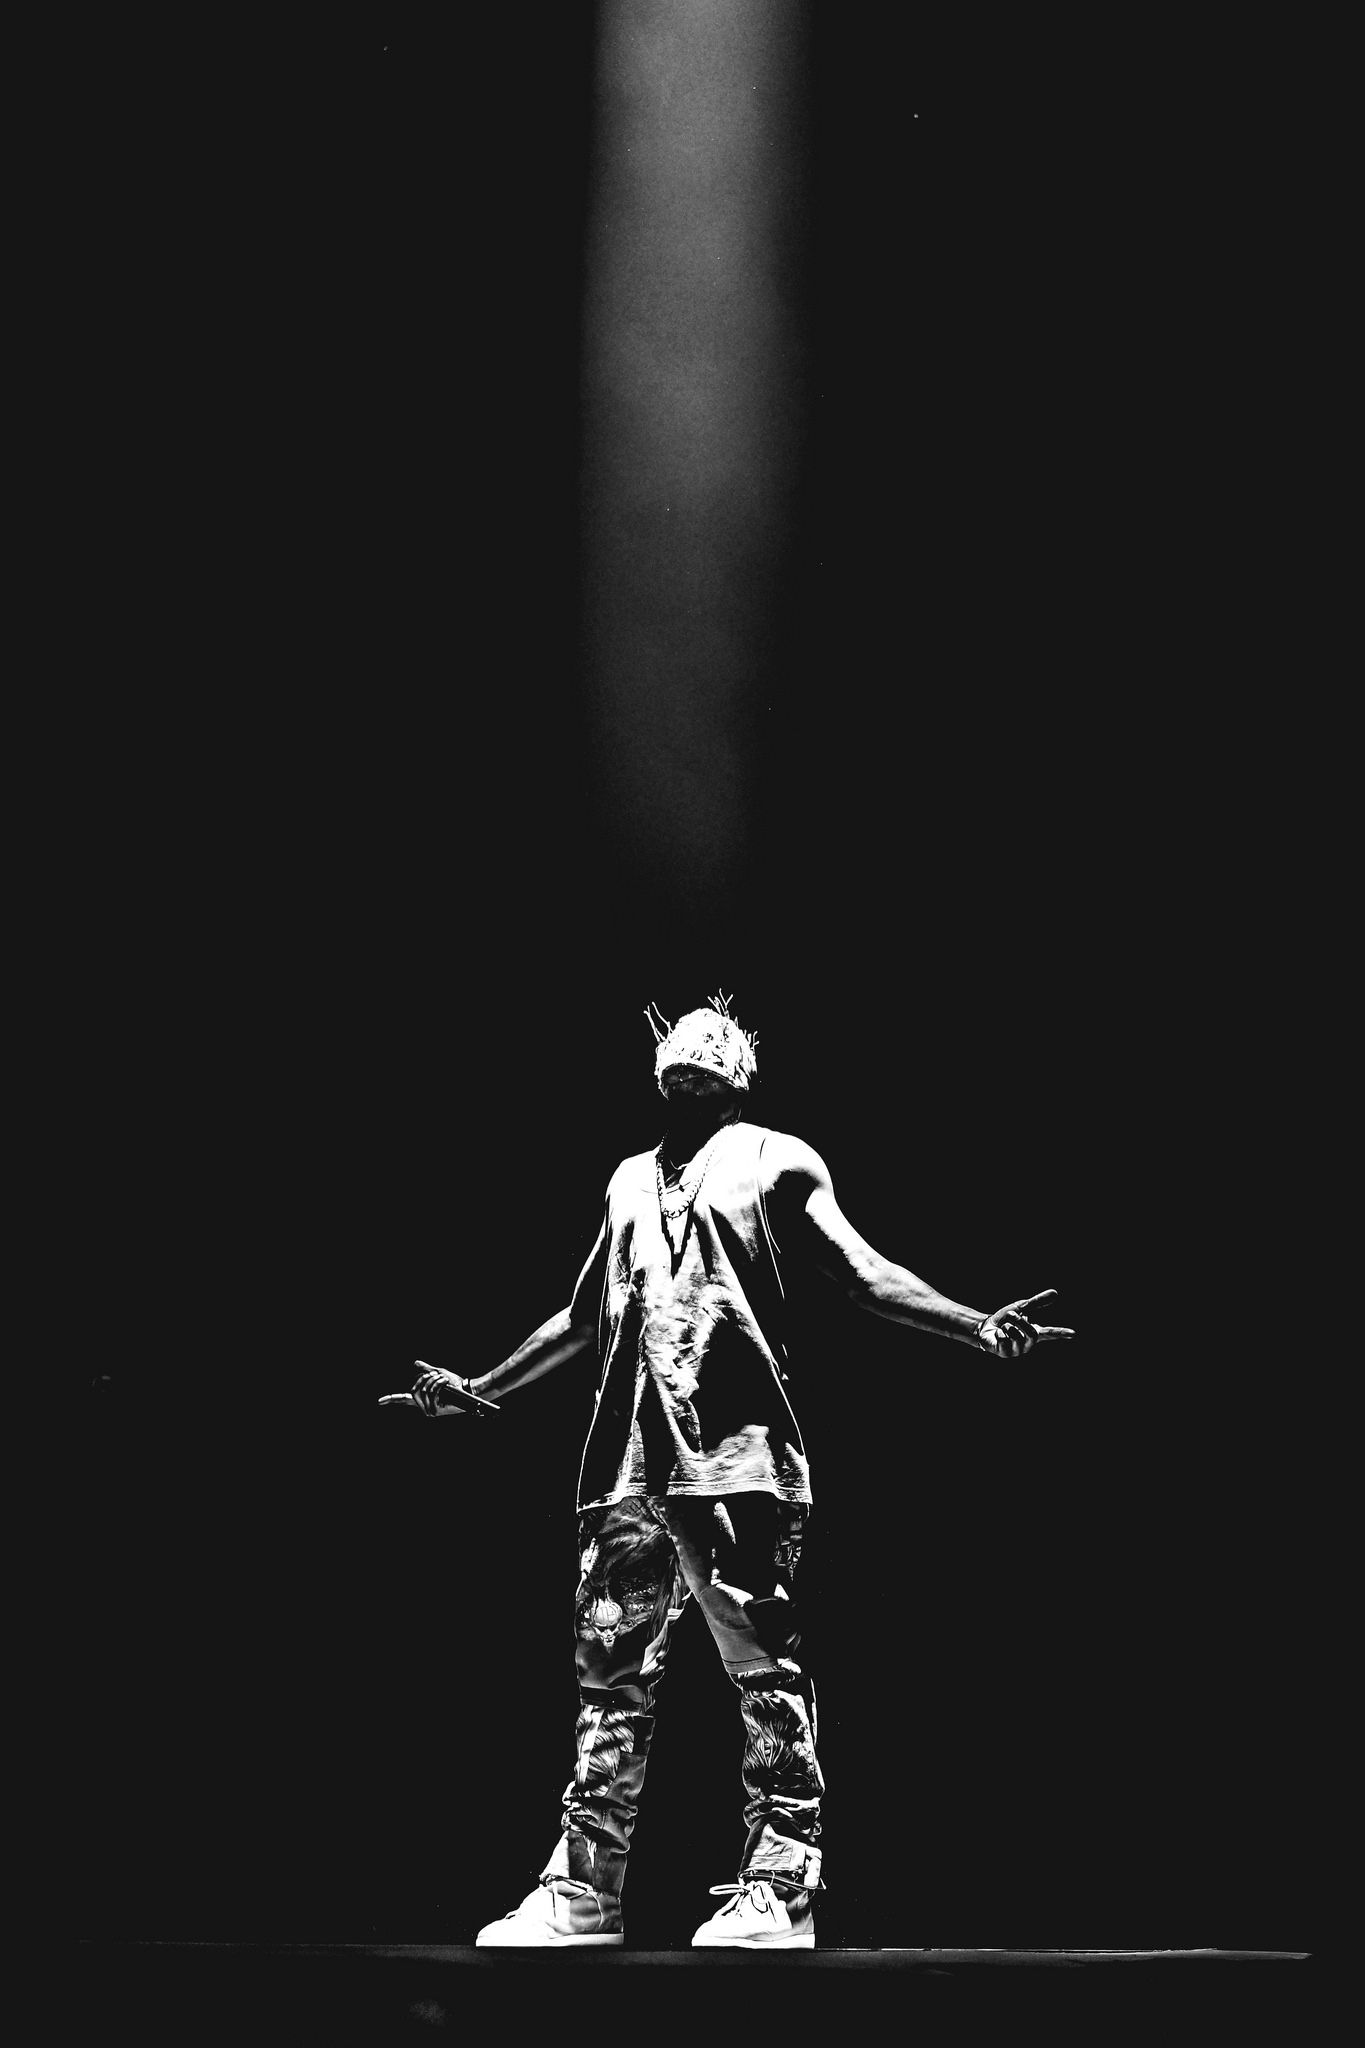 Kanye Iphone Wallpapers Top Free Kanye Iphone Backgrounds Wallpaperaccess